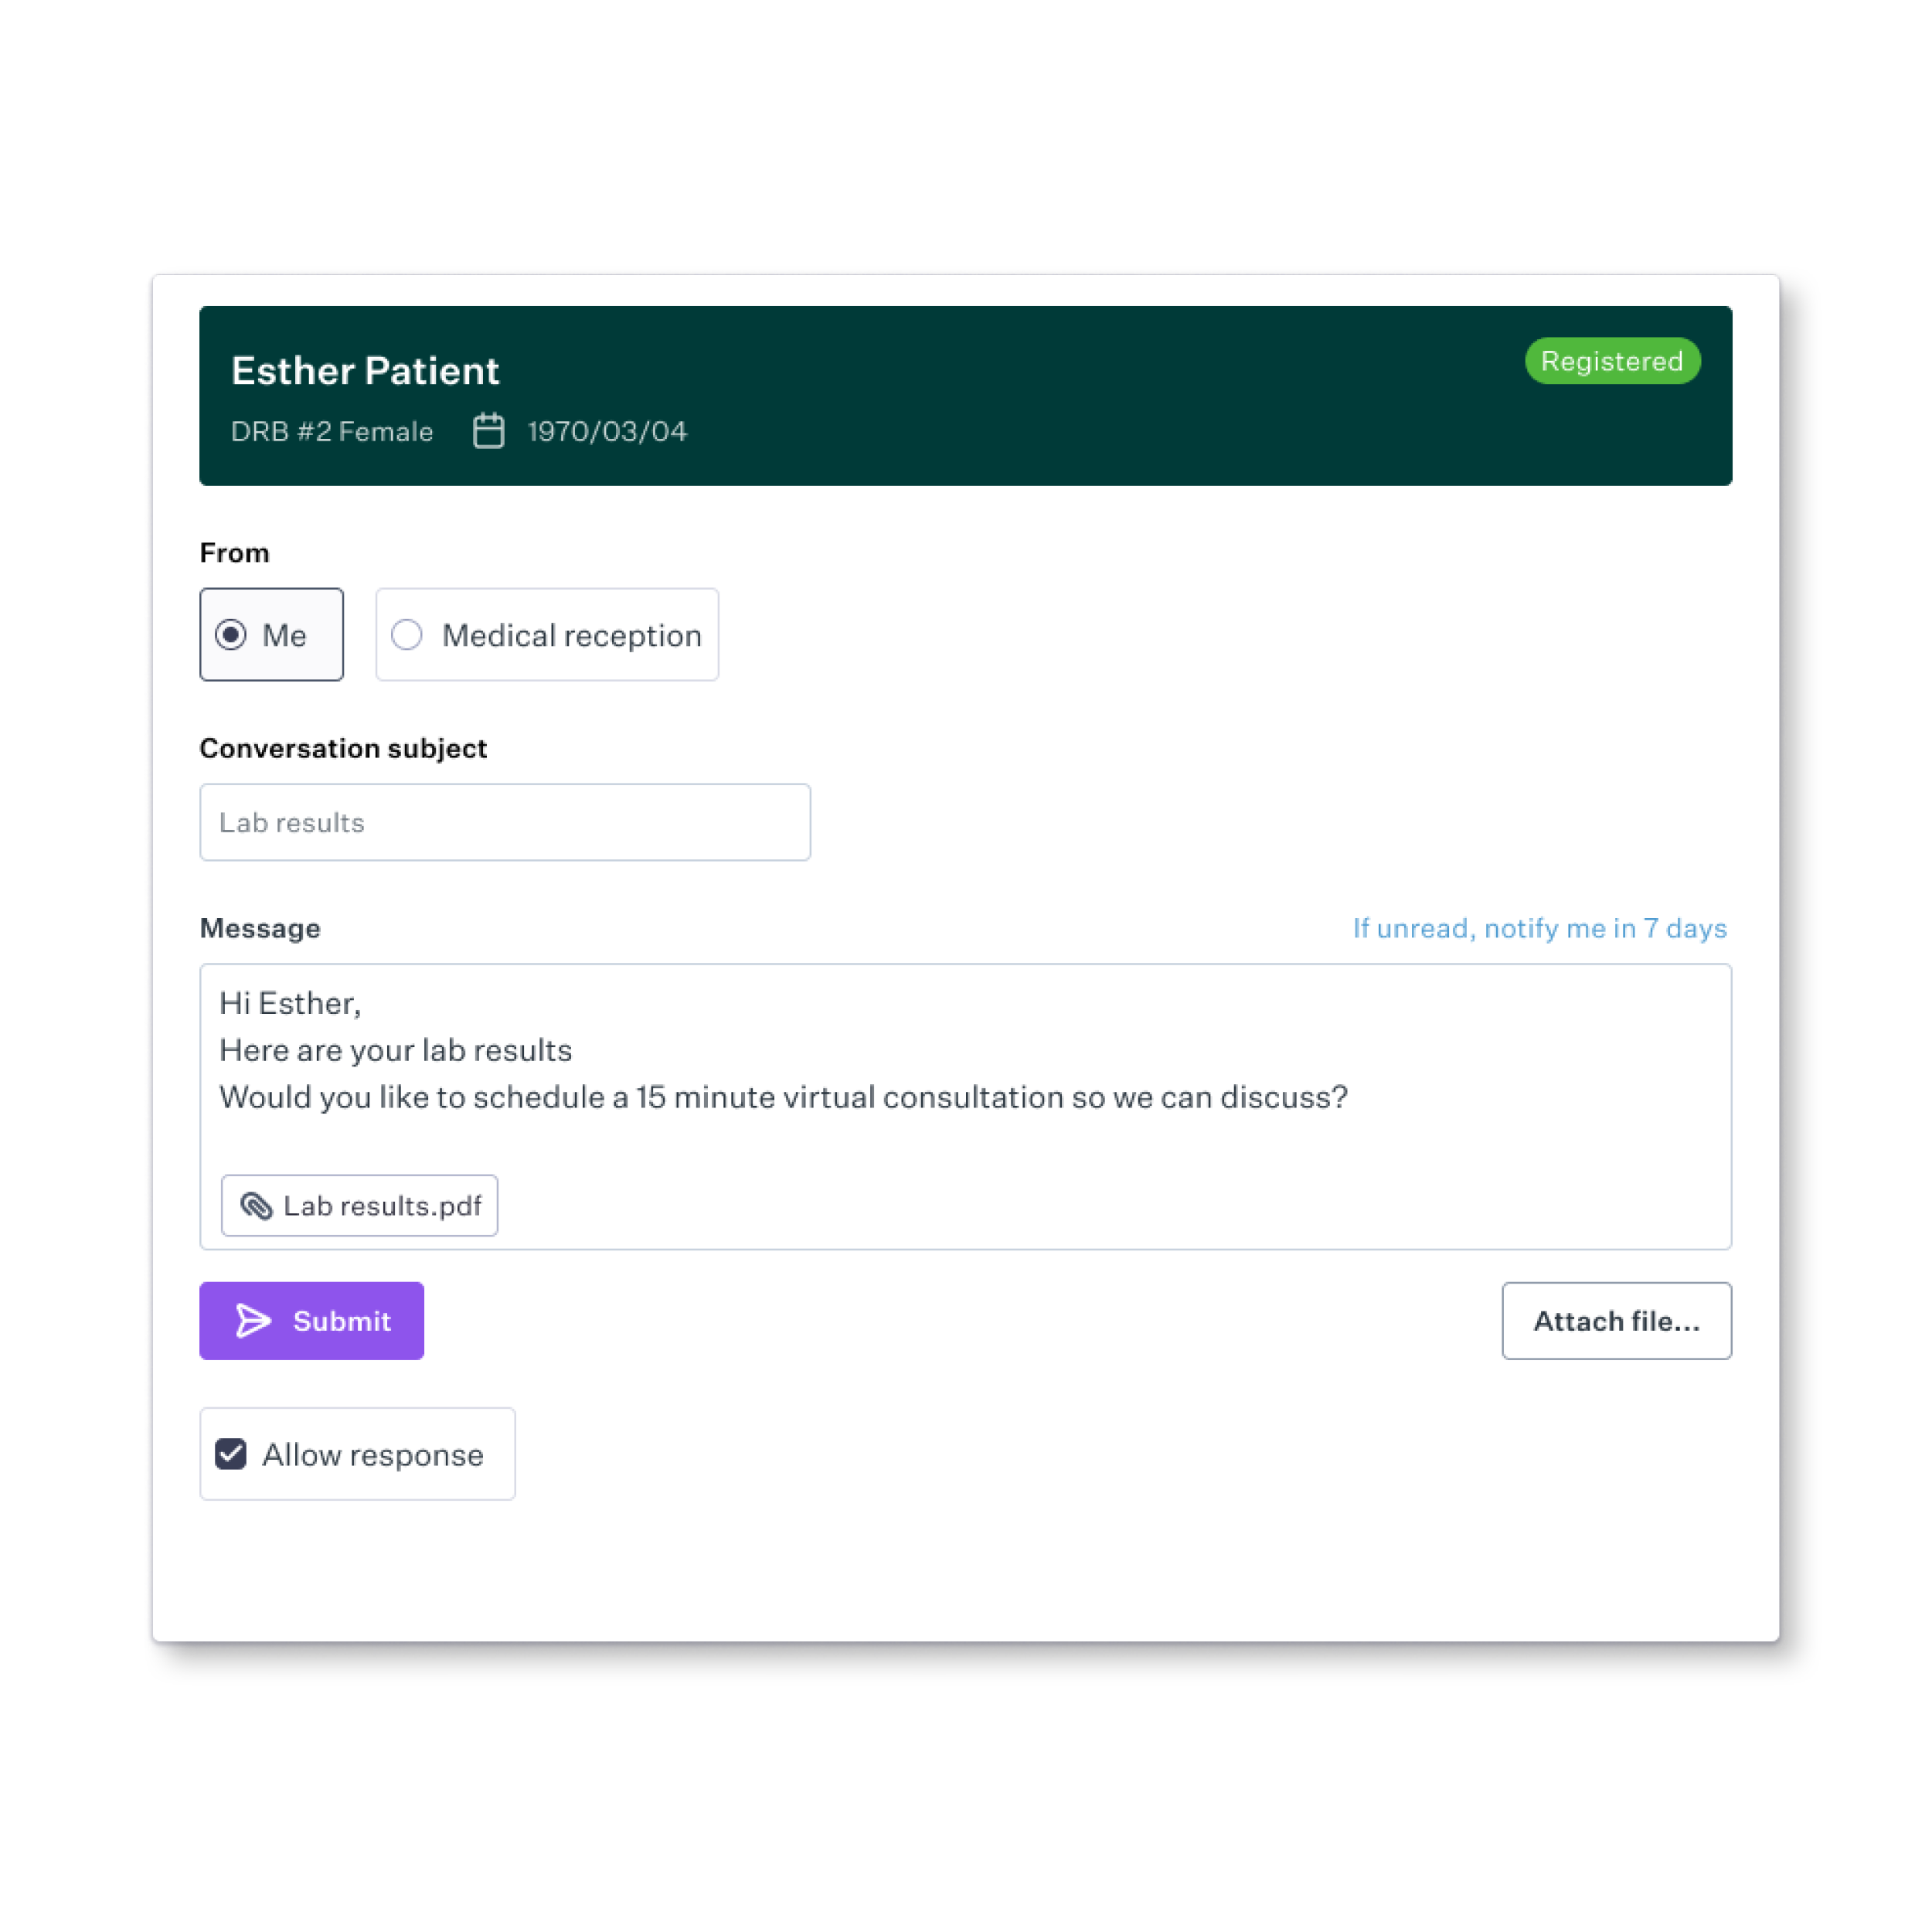 Share sensitive documents like test results, treatment plans, etc. and allow patients to send you attachments like eForms all from one secure, convenient location.